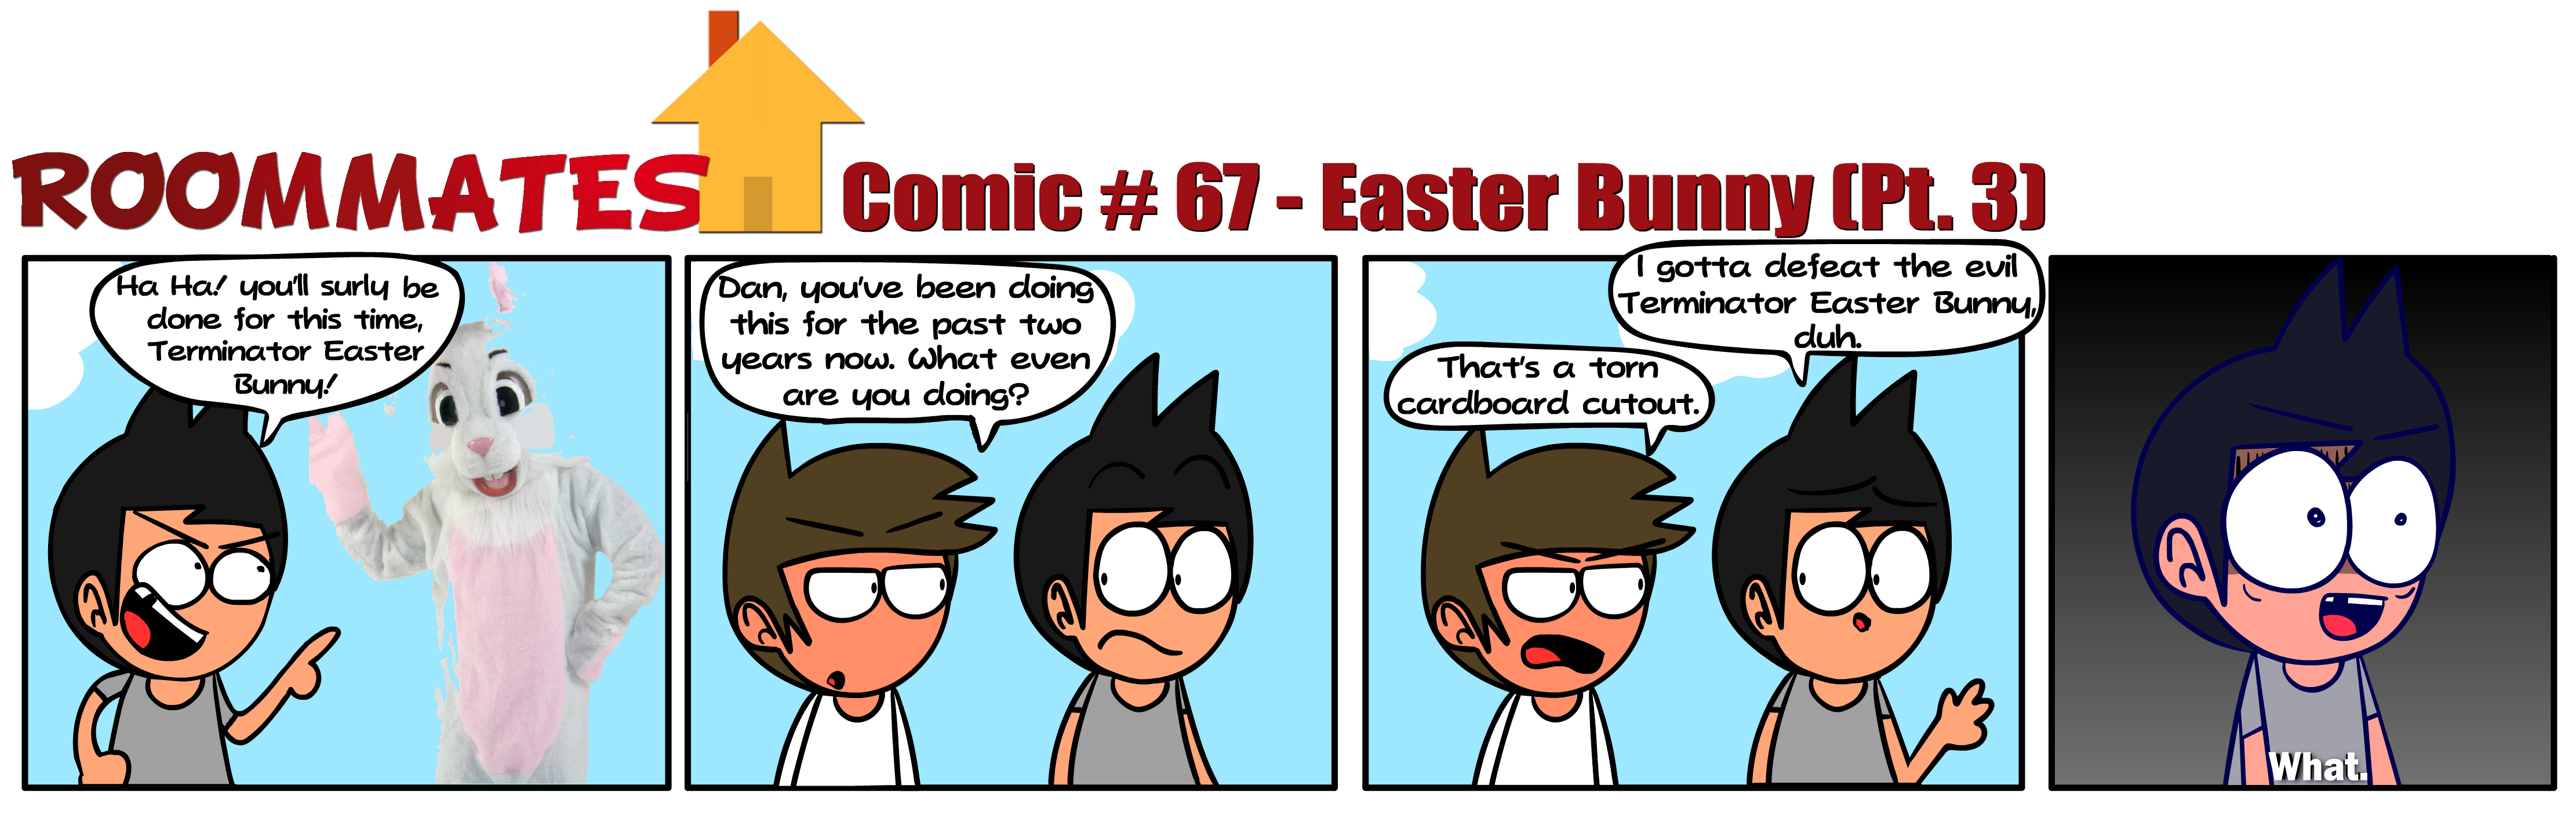 Roommates - Easter Bunny [Pt. 3] (Comic #67)